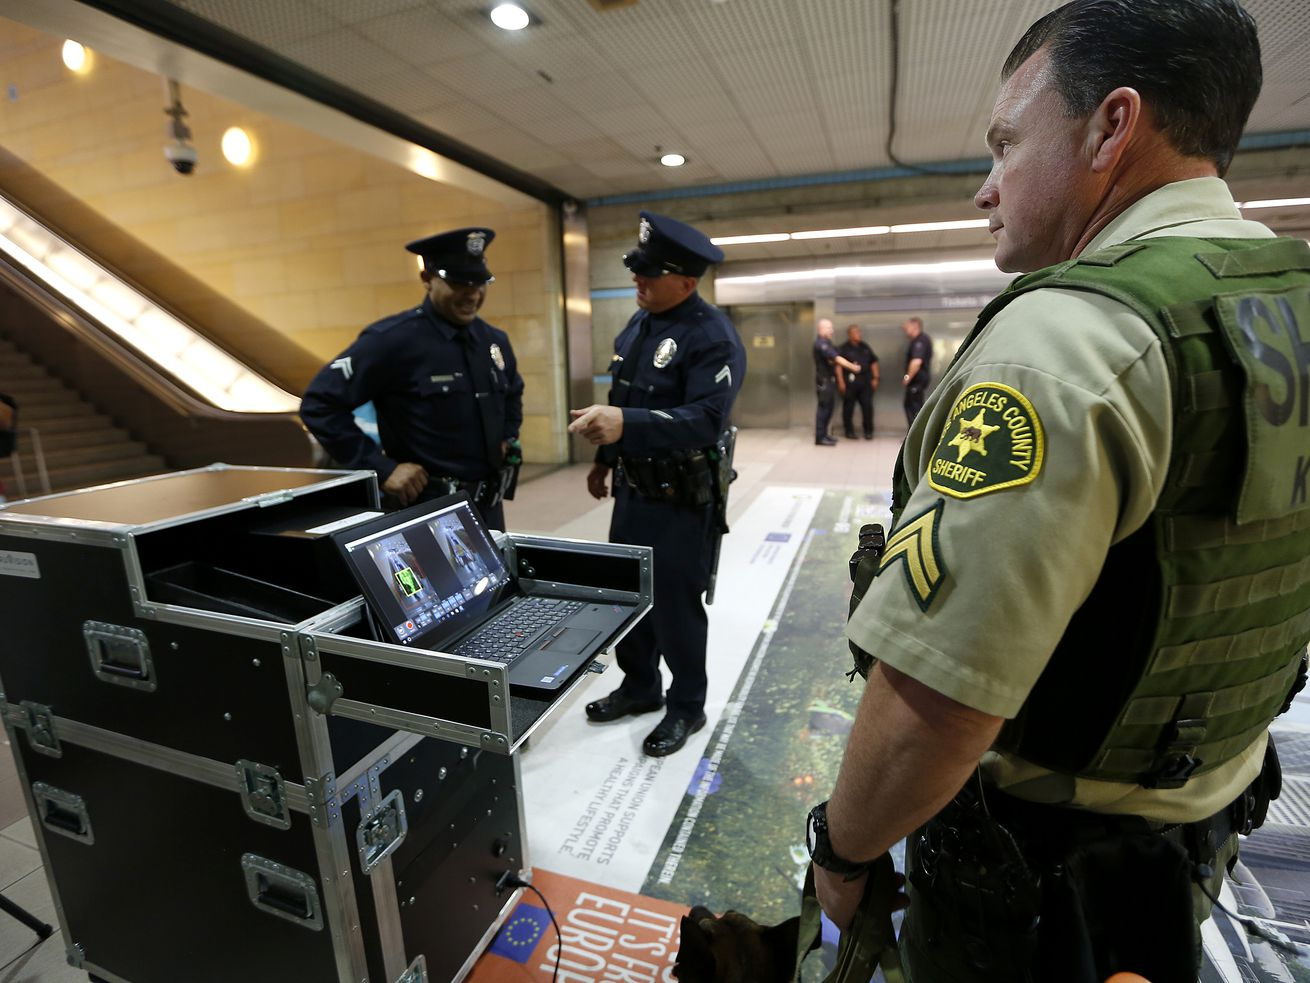 Officers testing the security devices in a Metro subway station.